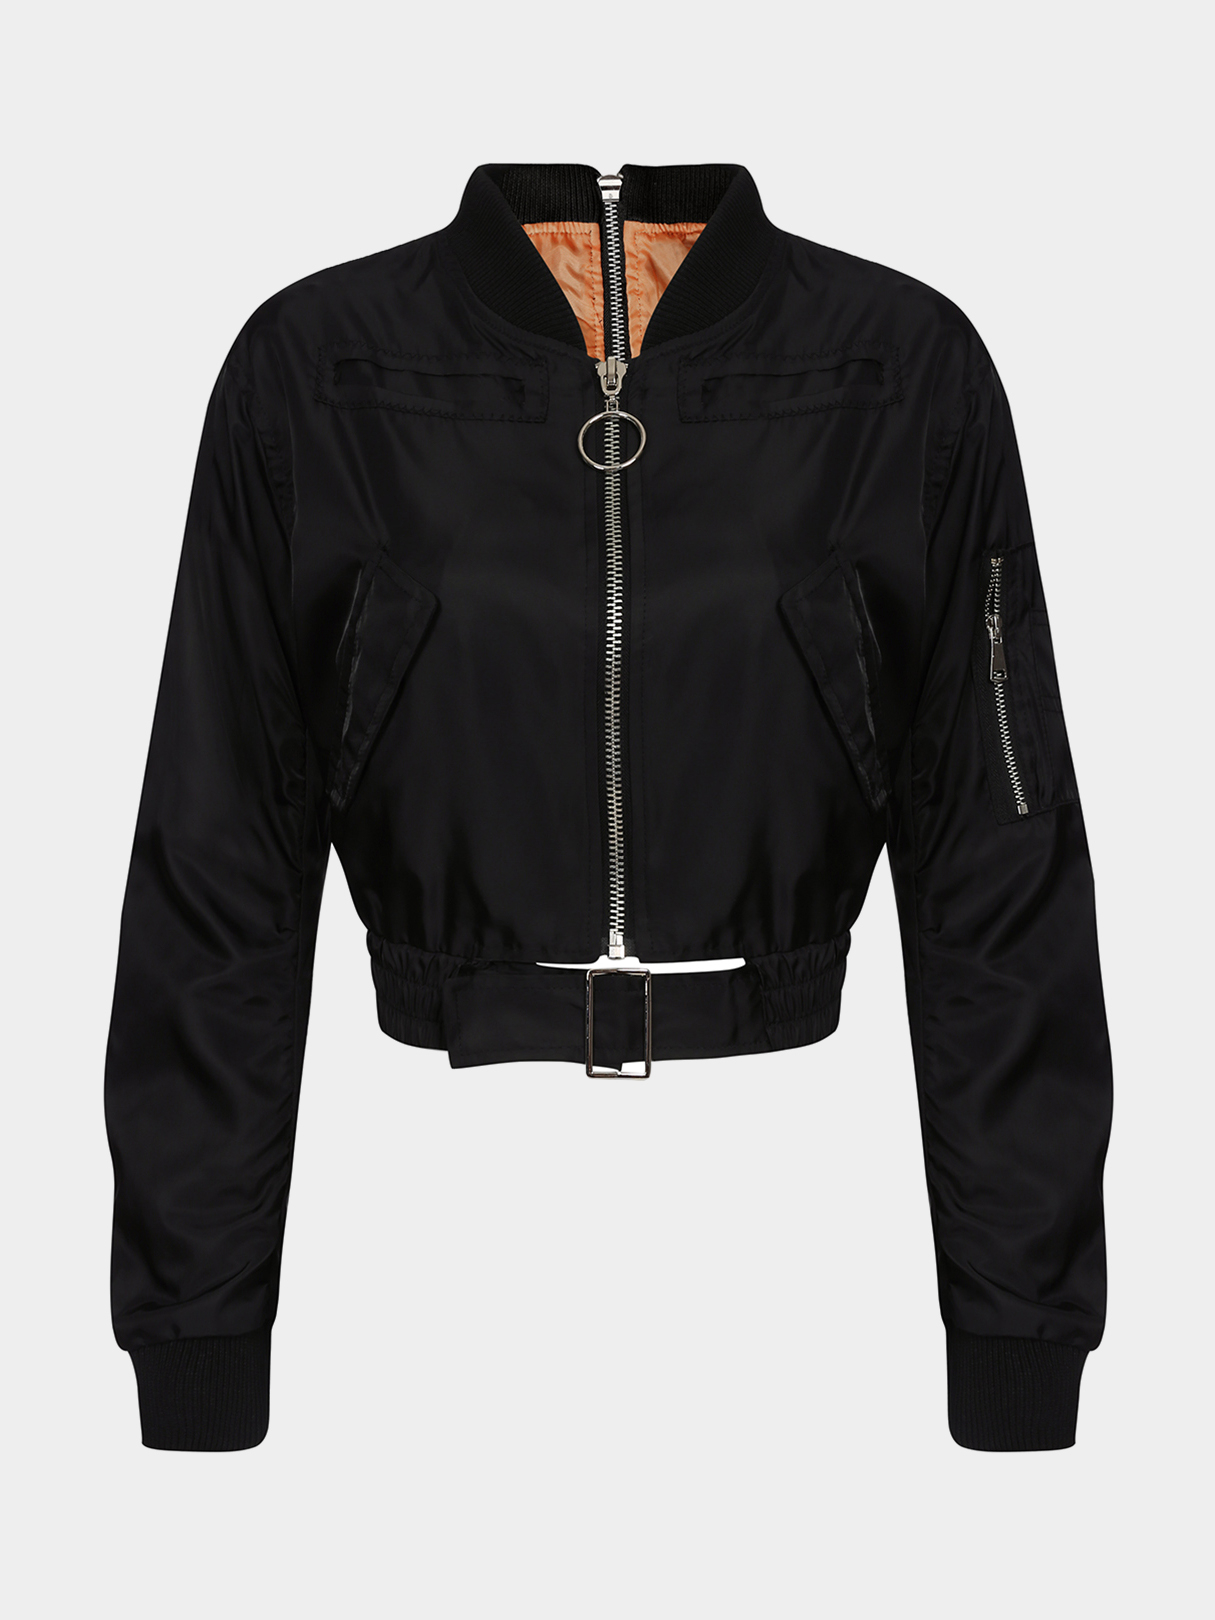 Black Zipper Front and Back Long Sleeves Side Pockets Jacket